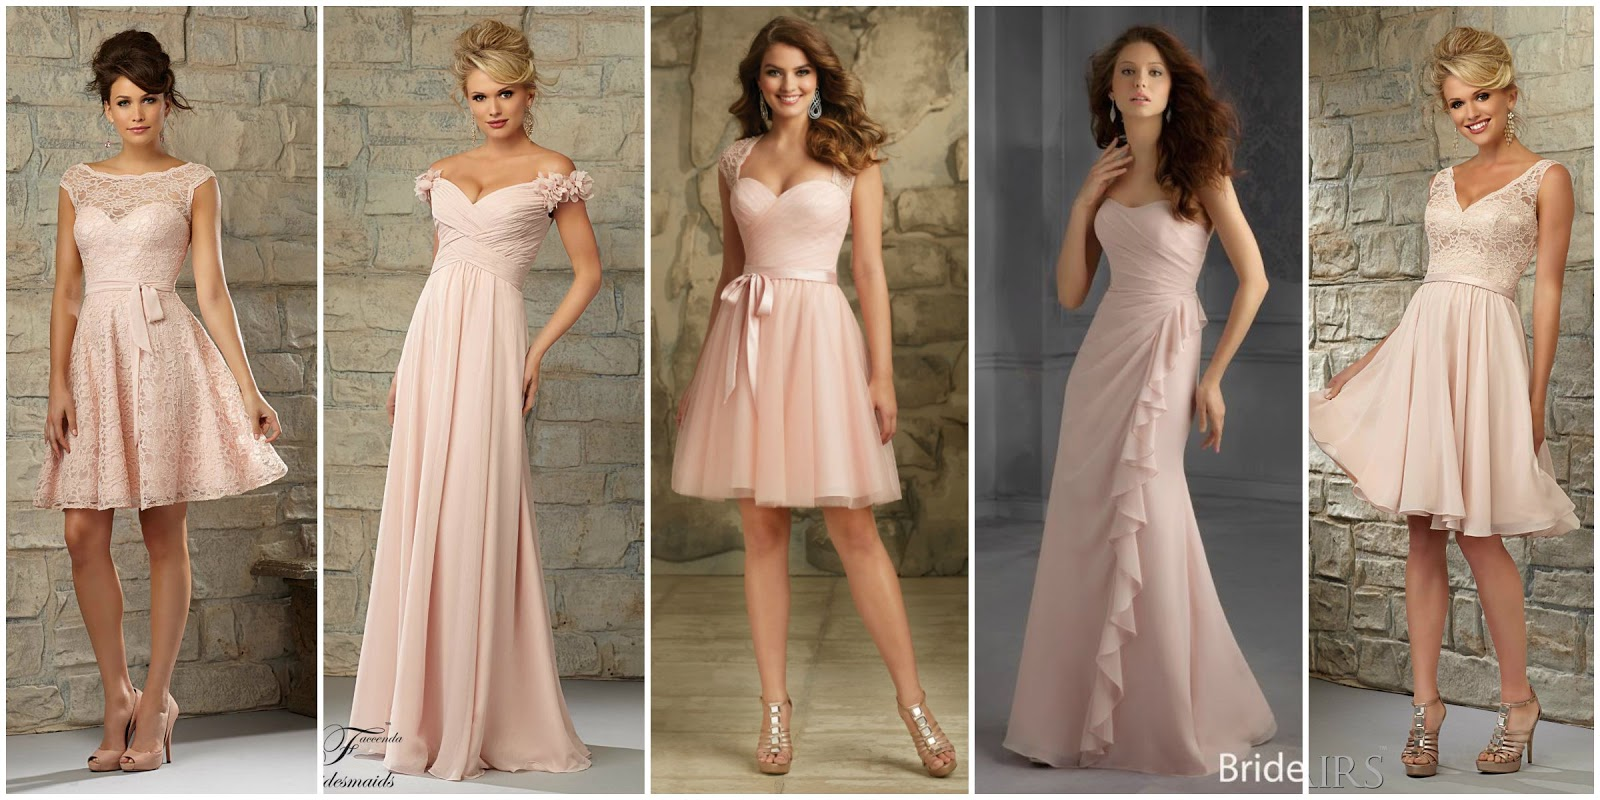 Brides of america online store bridesmaids dresses don 39 t for Miami wedding dresses stores